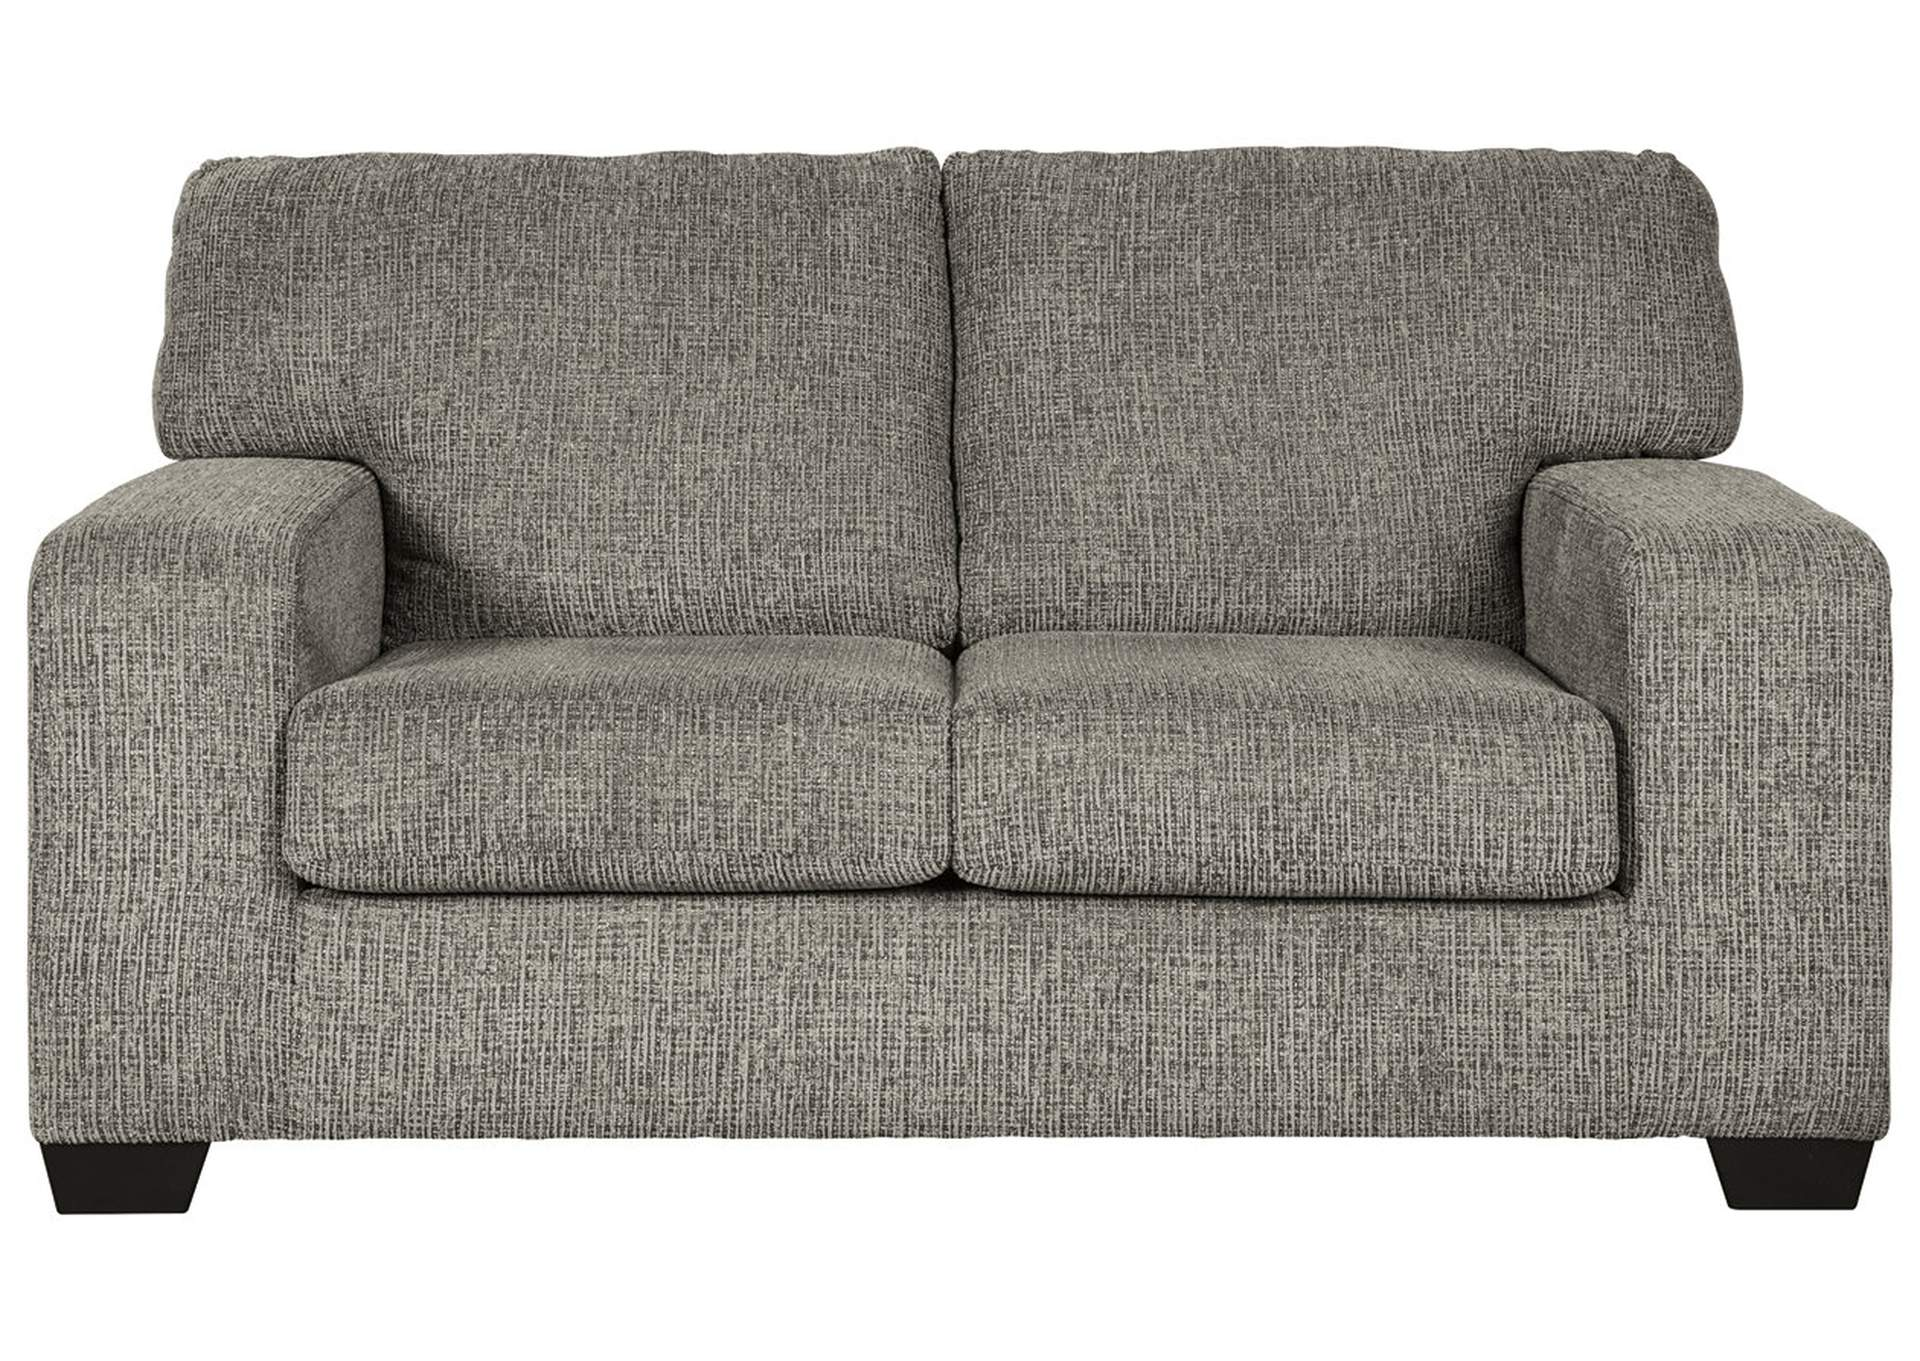 Termoli Loveseat,Signature Design By Ashley